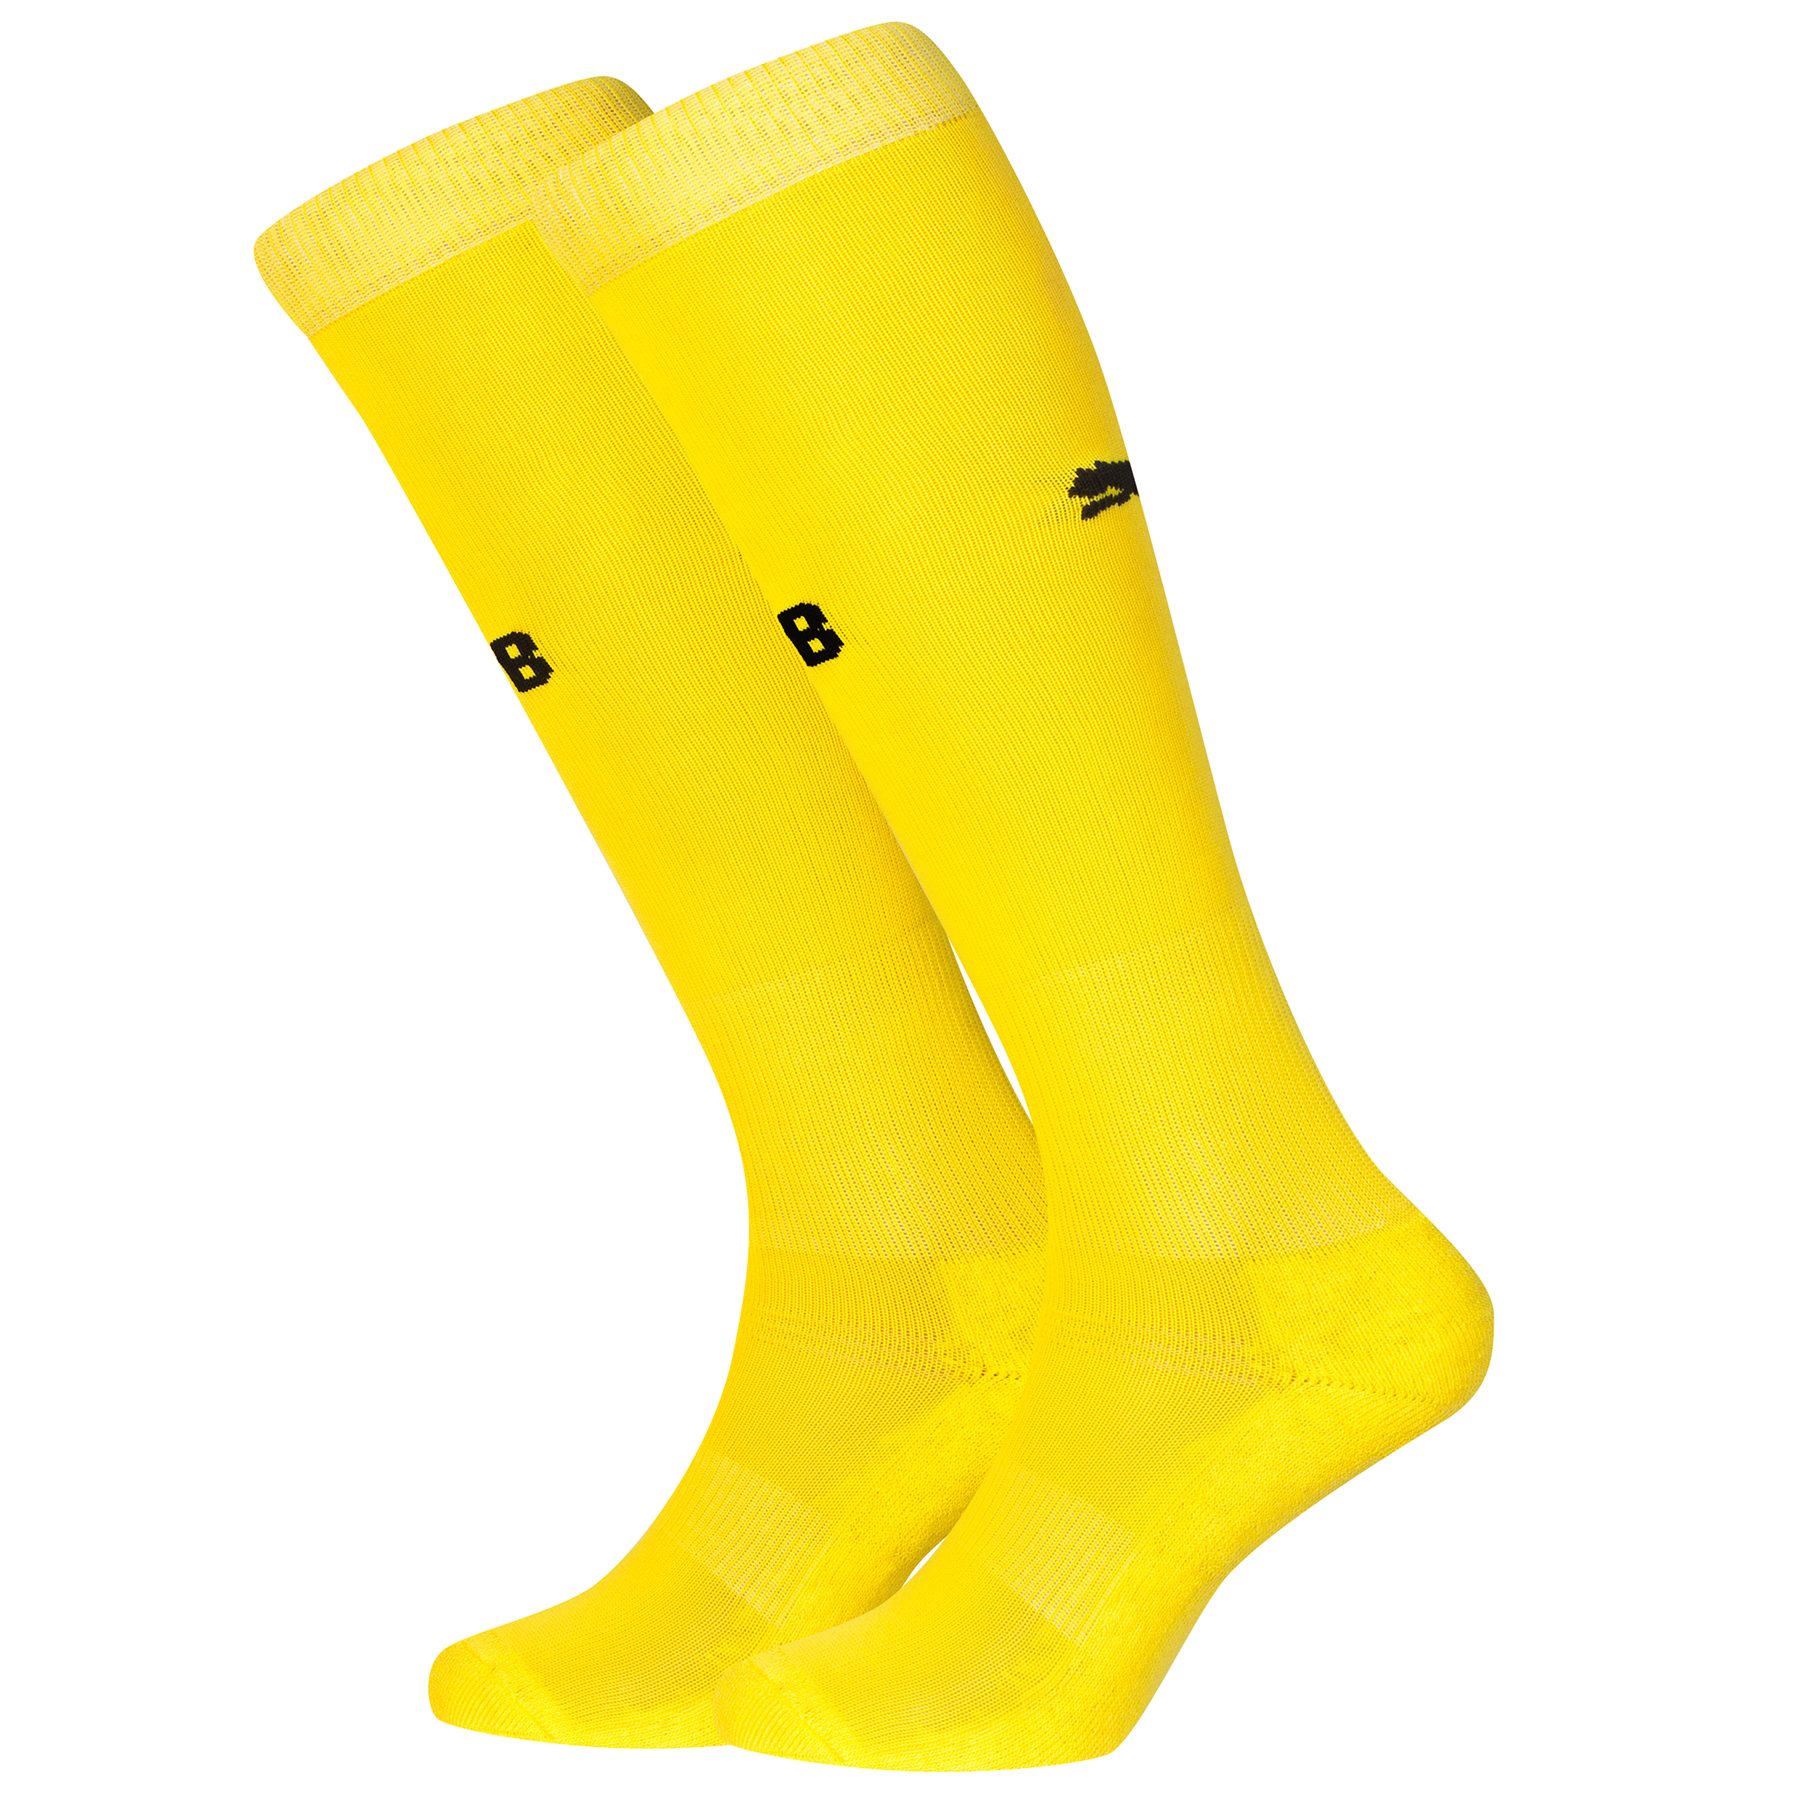 BVB Ambassador Home Socks 201516 Yellow